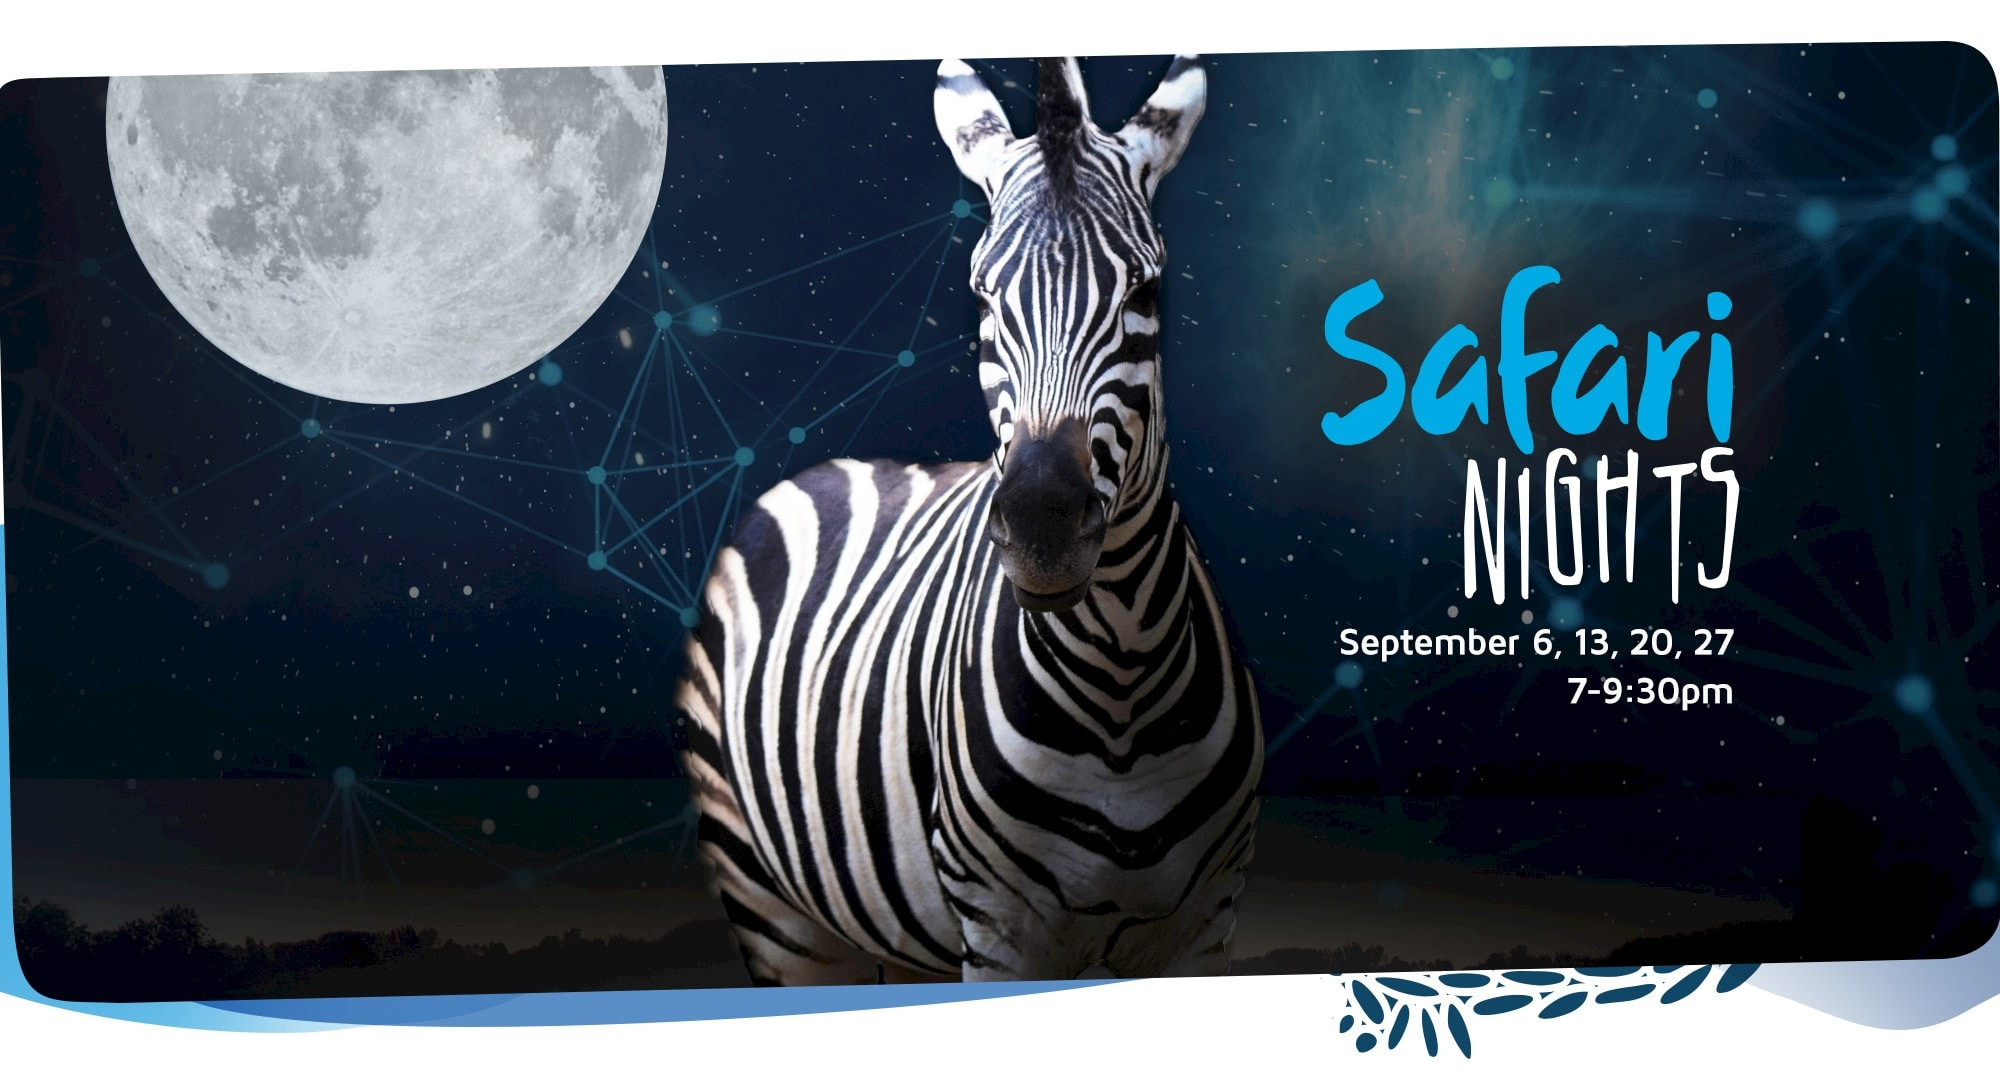 Every Friday night in September brings safari family fun. Click for more information.